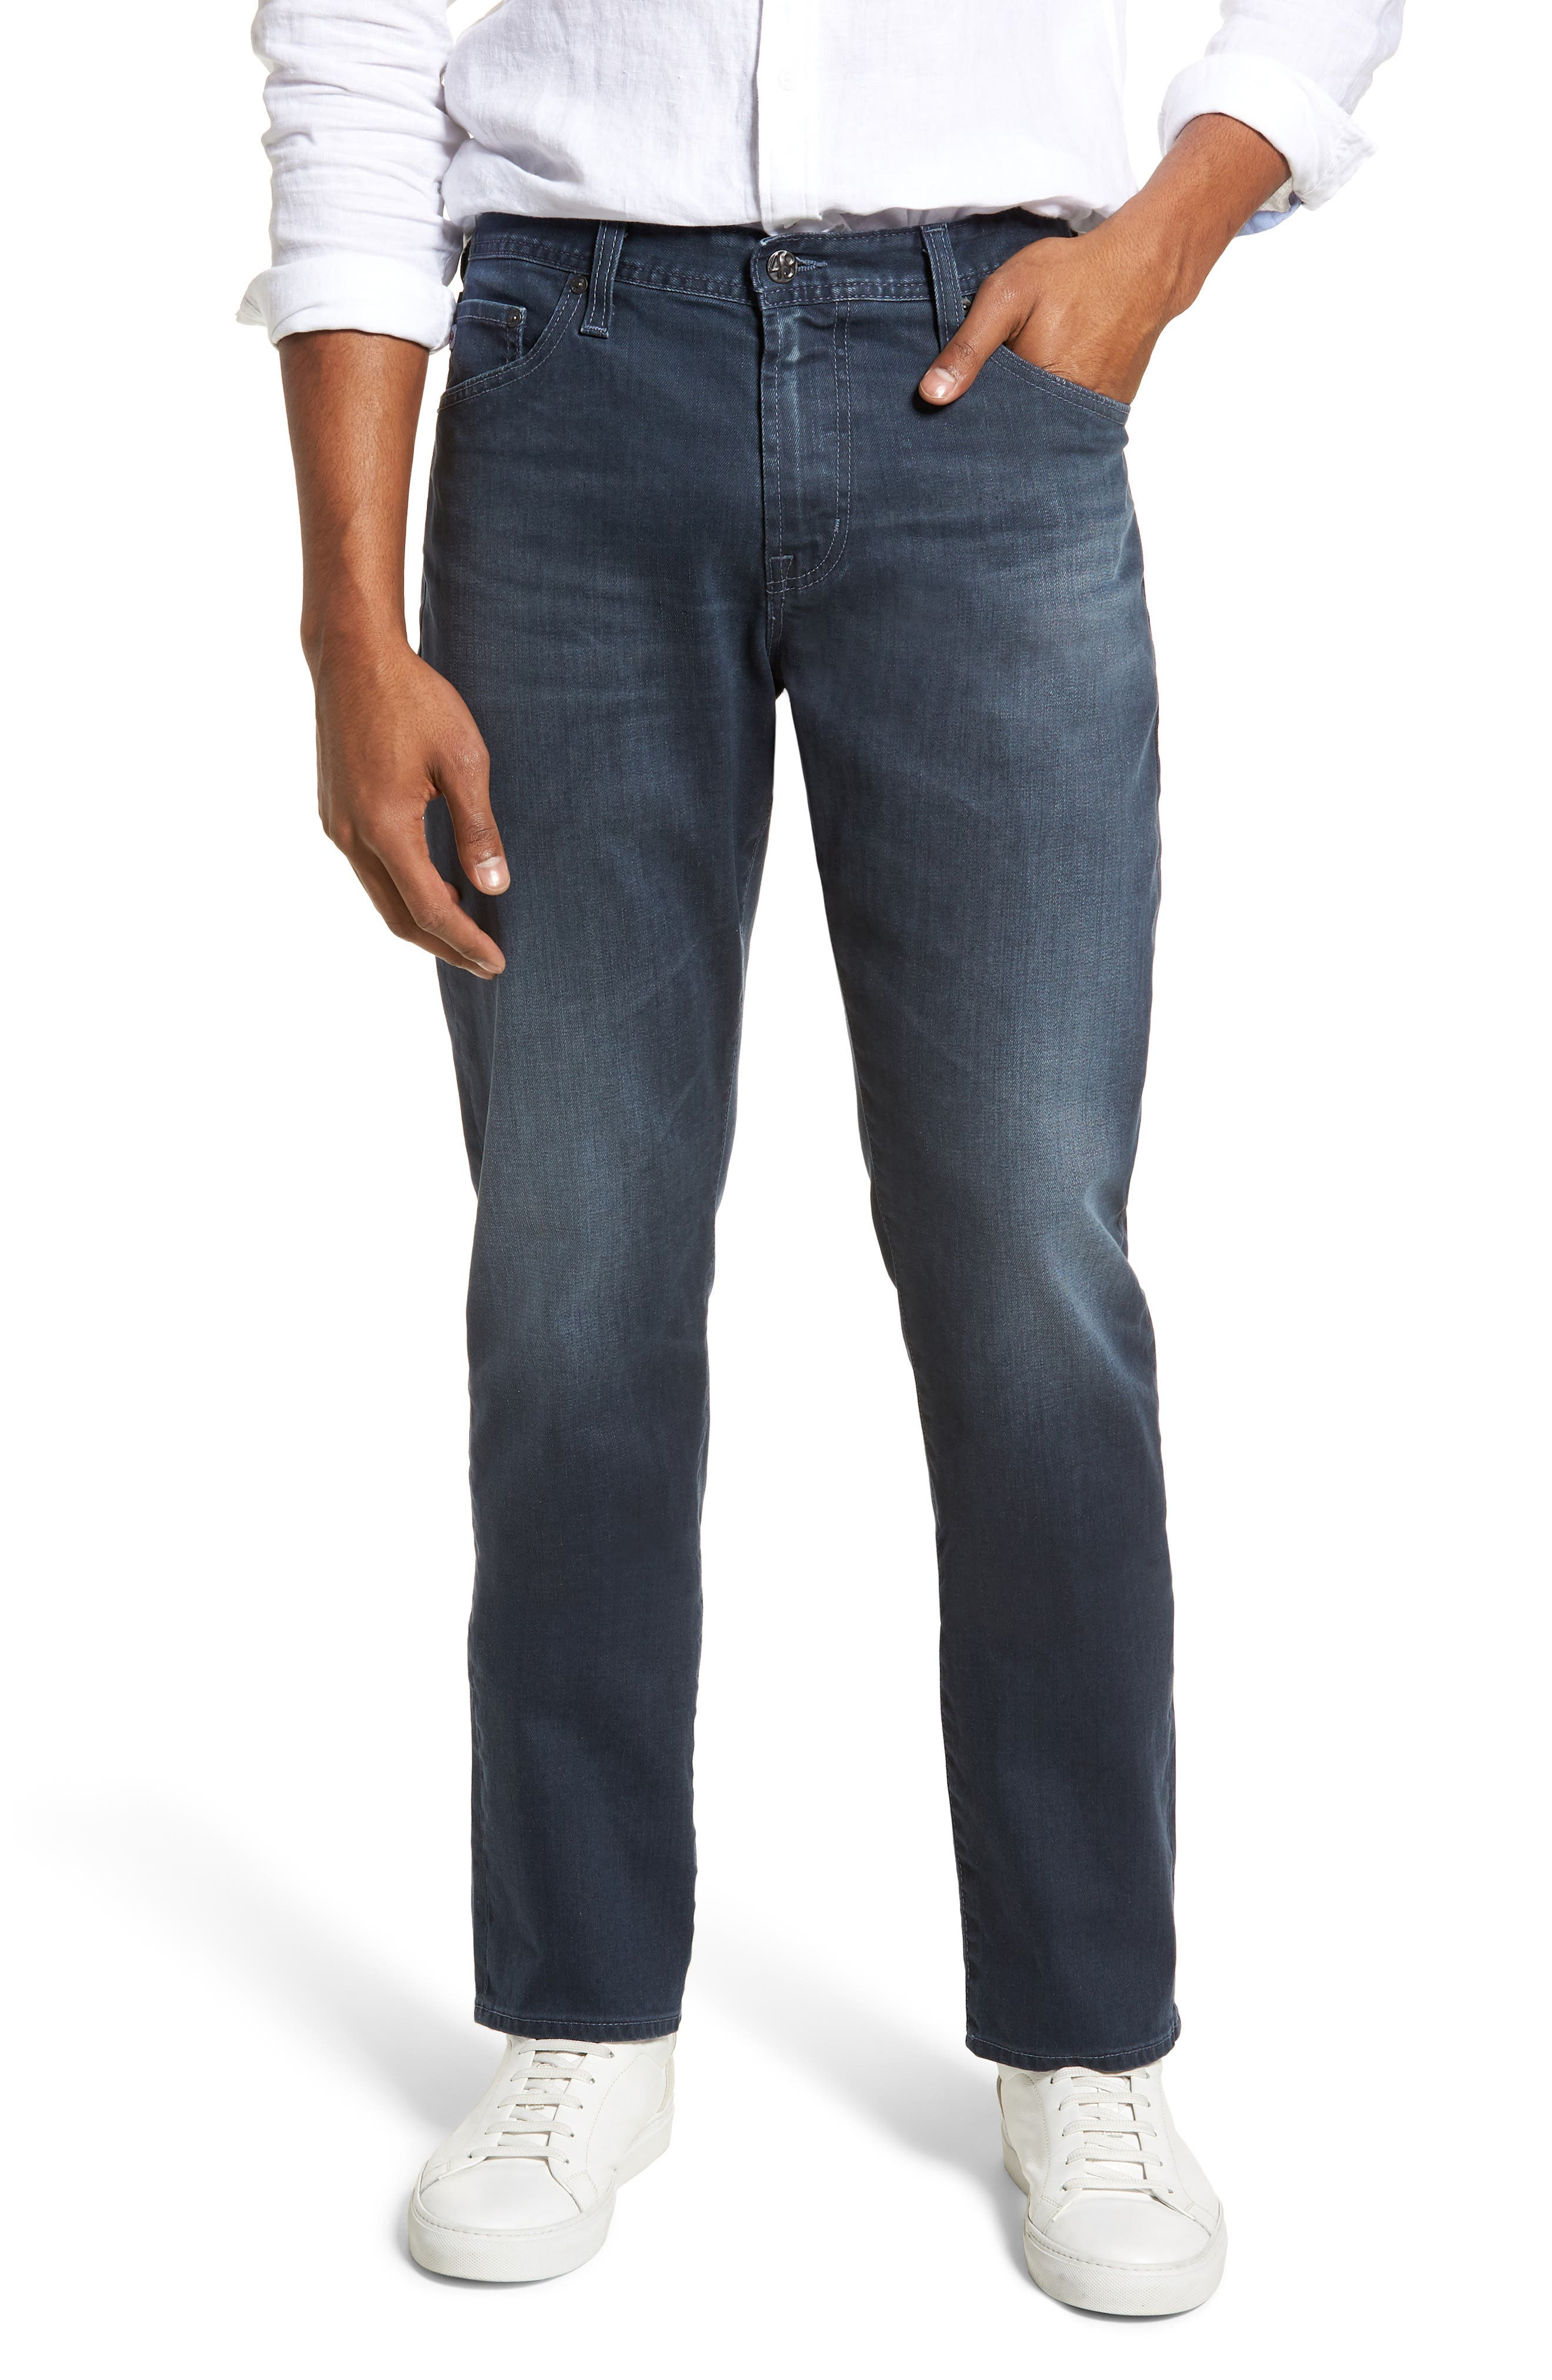 Everett Slim Straight Leg Jeans,                         Main,                         color, 9 YEARS TIDEPOOL